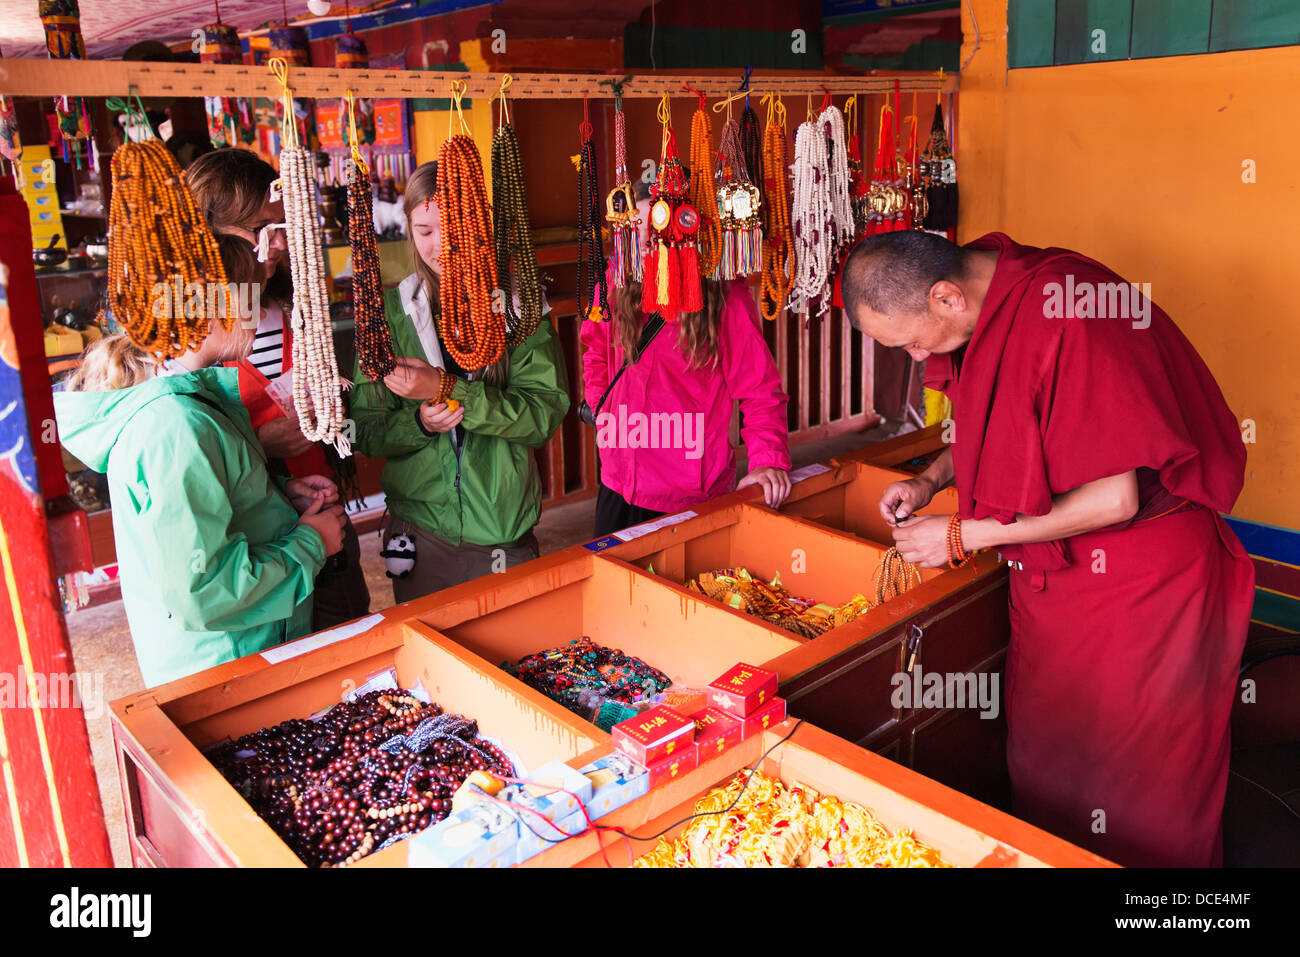 Tourists look at jewelry as monk works on some beaded jewelry at Drepung Monastery; Lhasa, Tibet, Xizang, China - Stock Image